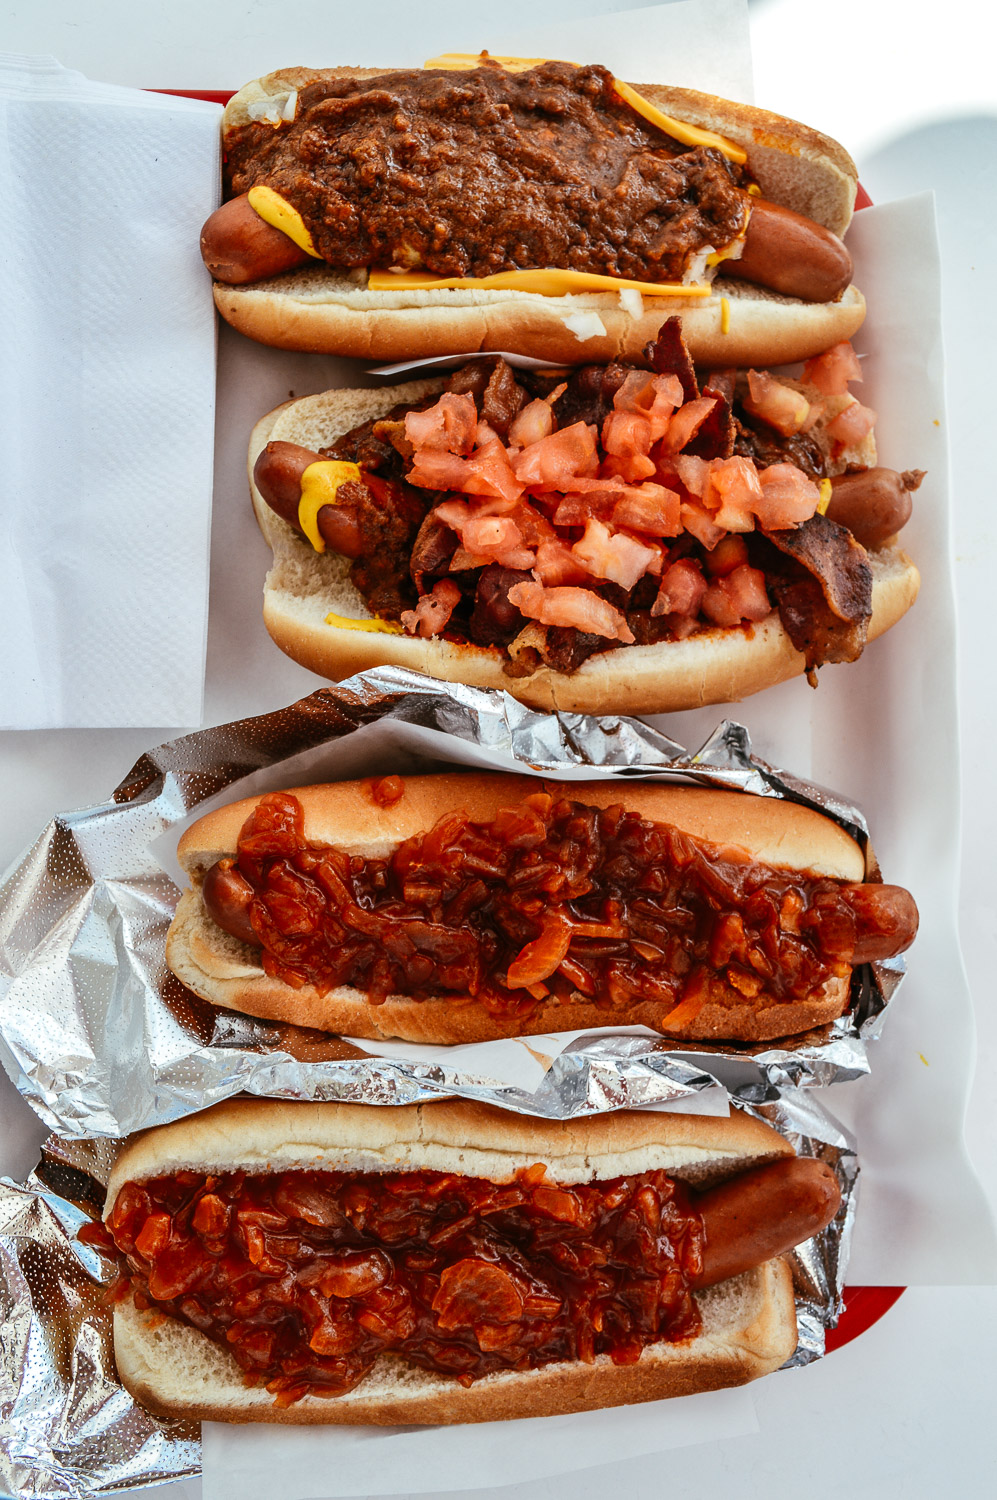 pinks-hot-dog-los-angeles-california-weekend-8